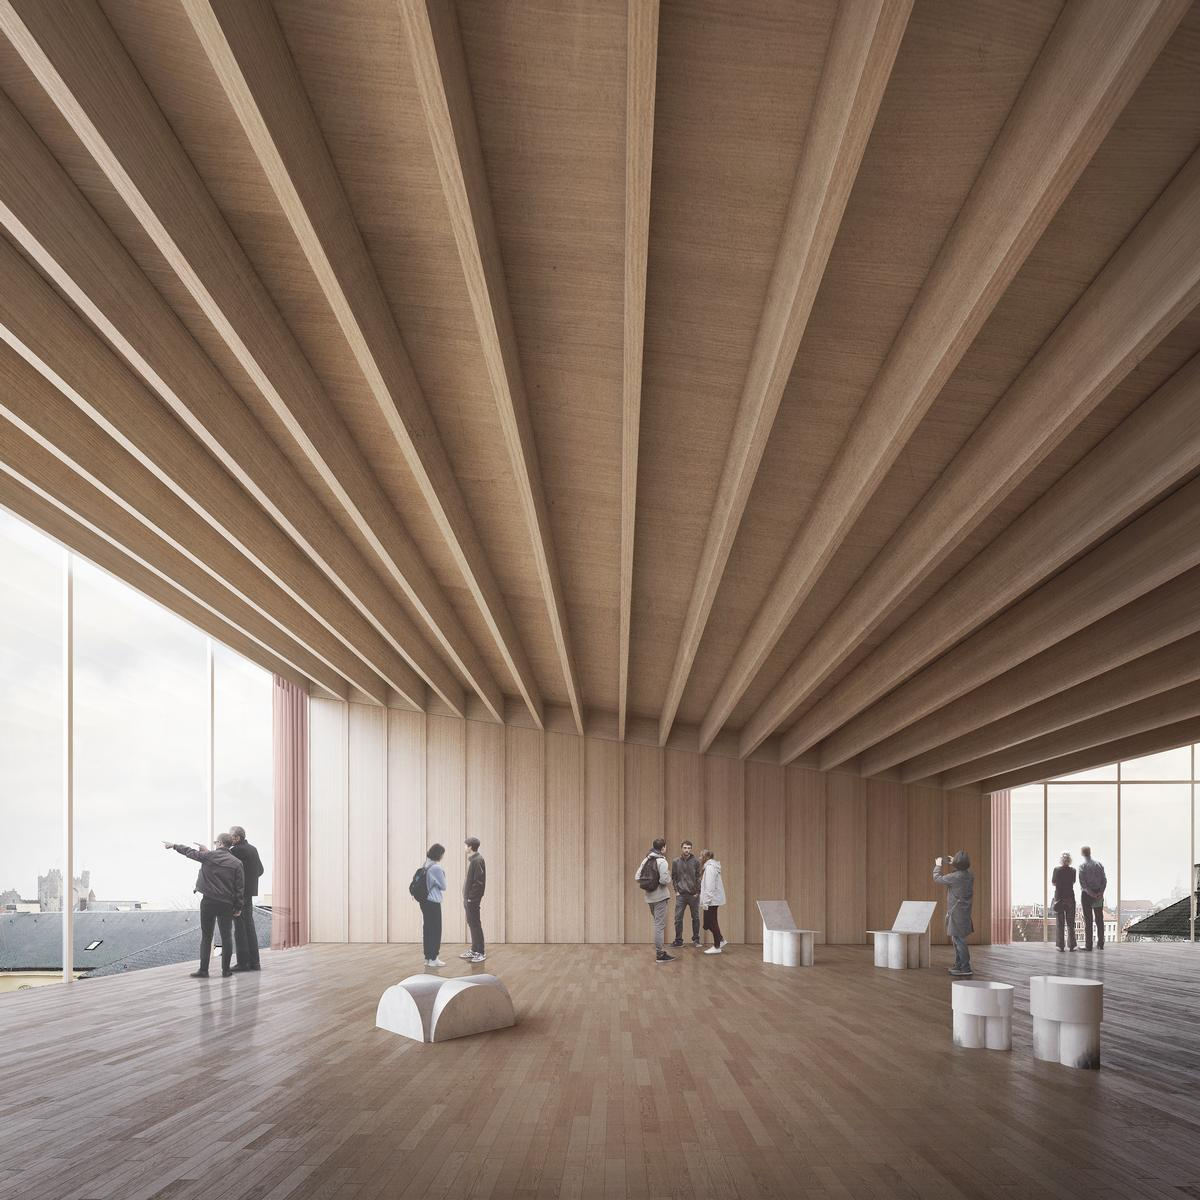 The extension will provide additional spaces for exhibitions, debate, reflection, public activities, retail and catering / TRANS, Carmody Groarke en RE-ST